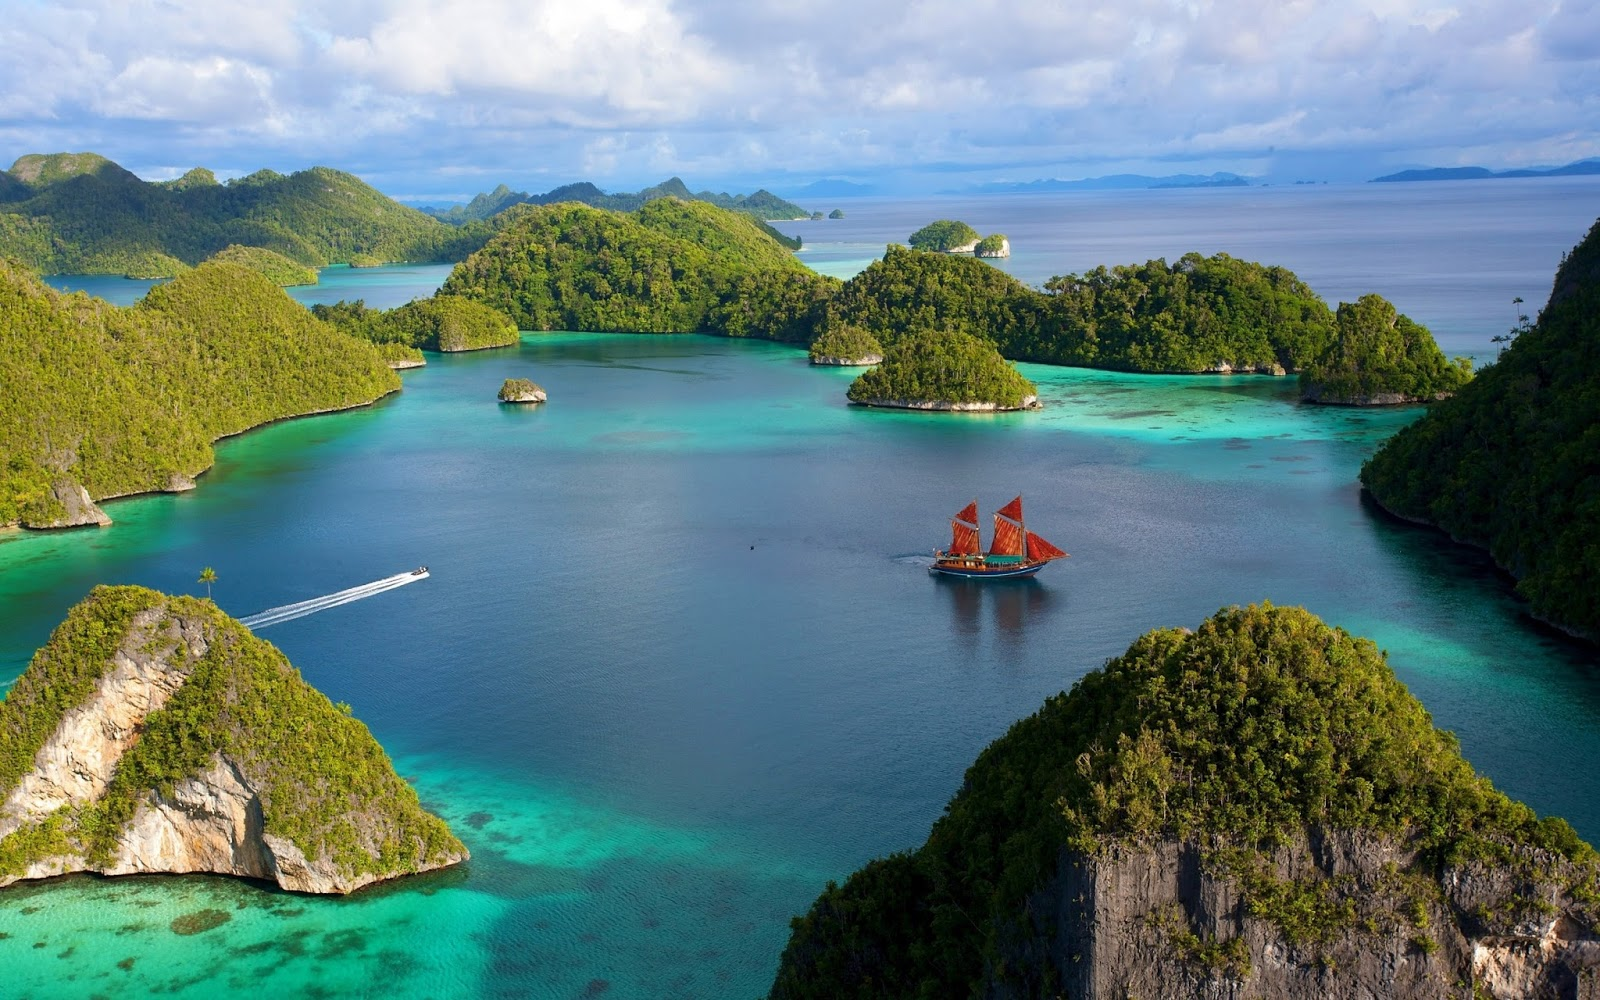 Travel & Adventures: Indonesia. A voyage to Indonesia ...